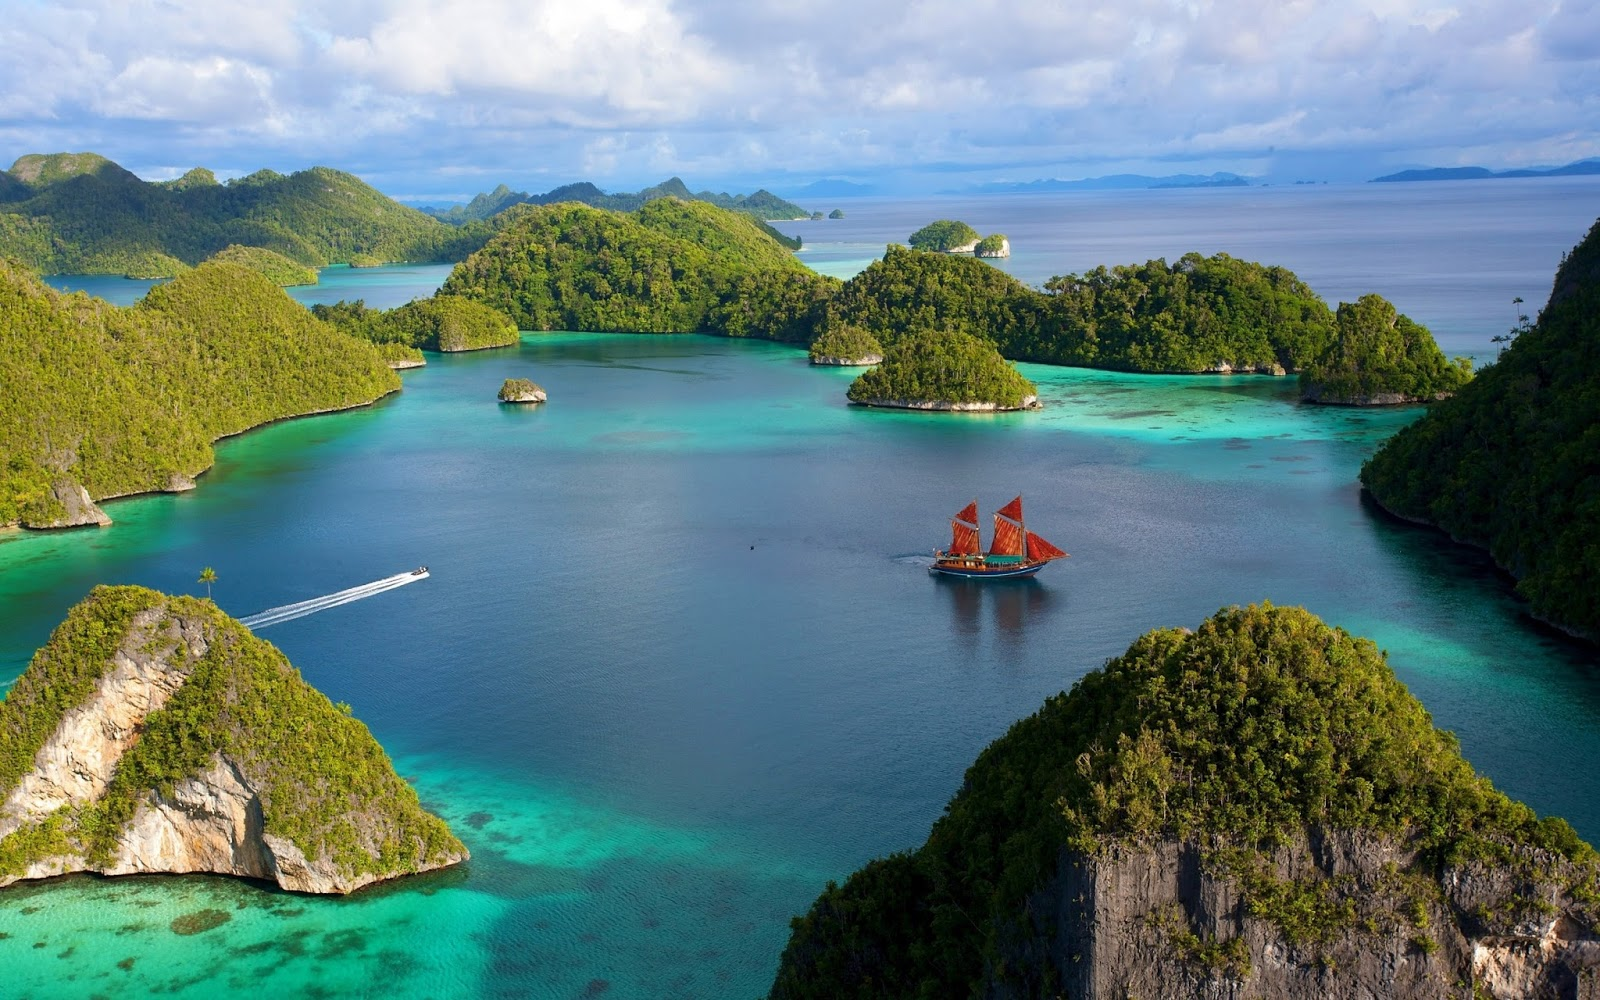 Travel & Adventures: Indonesia. A voyage to Indonesia ...